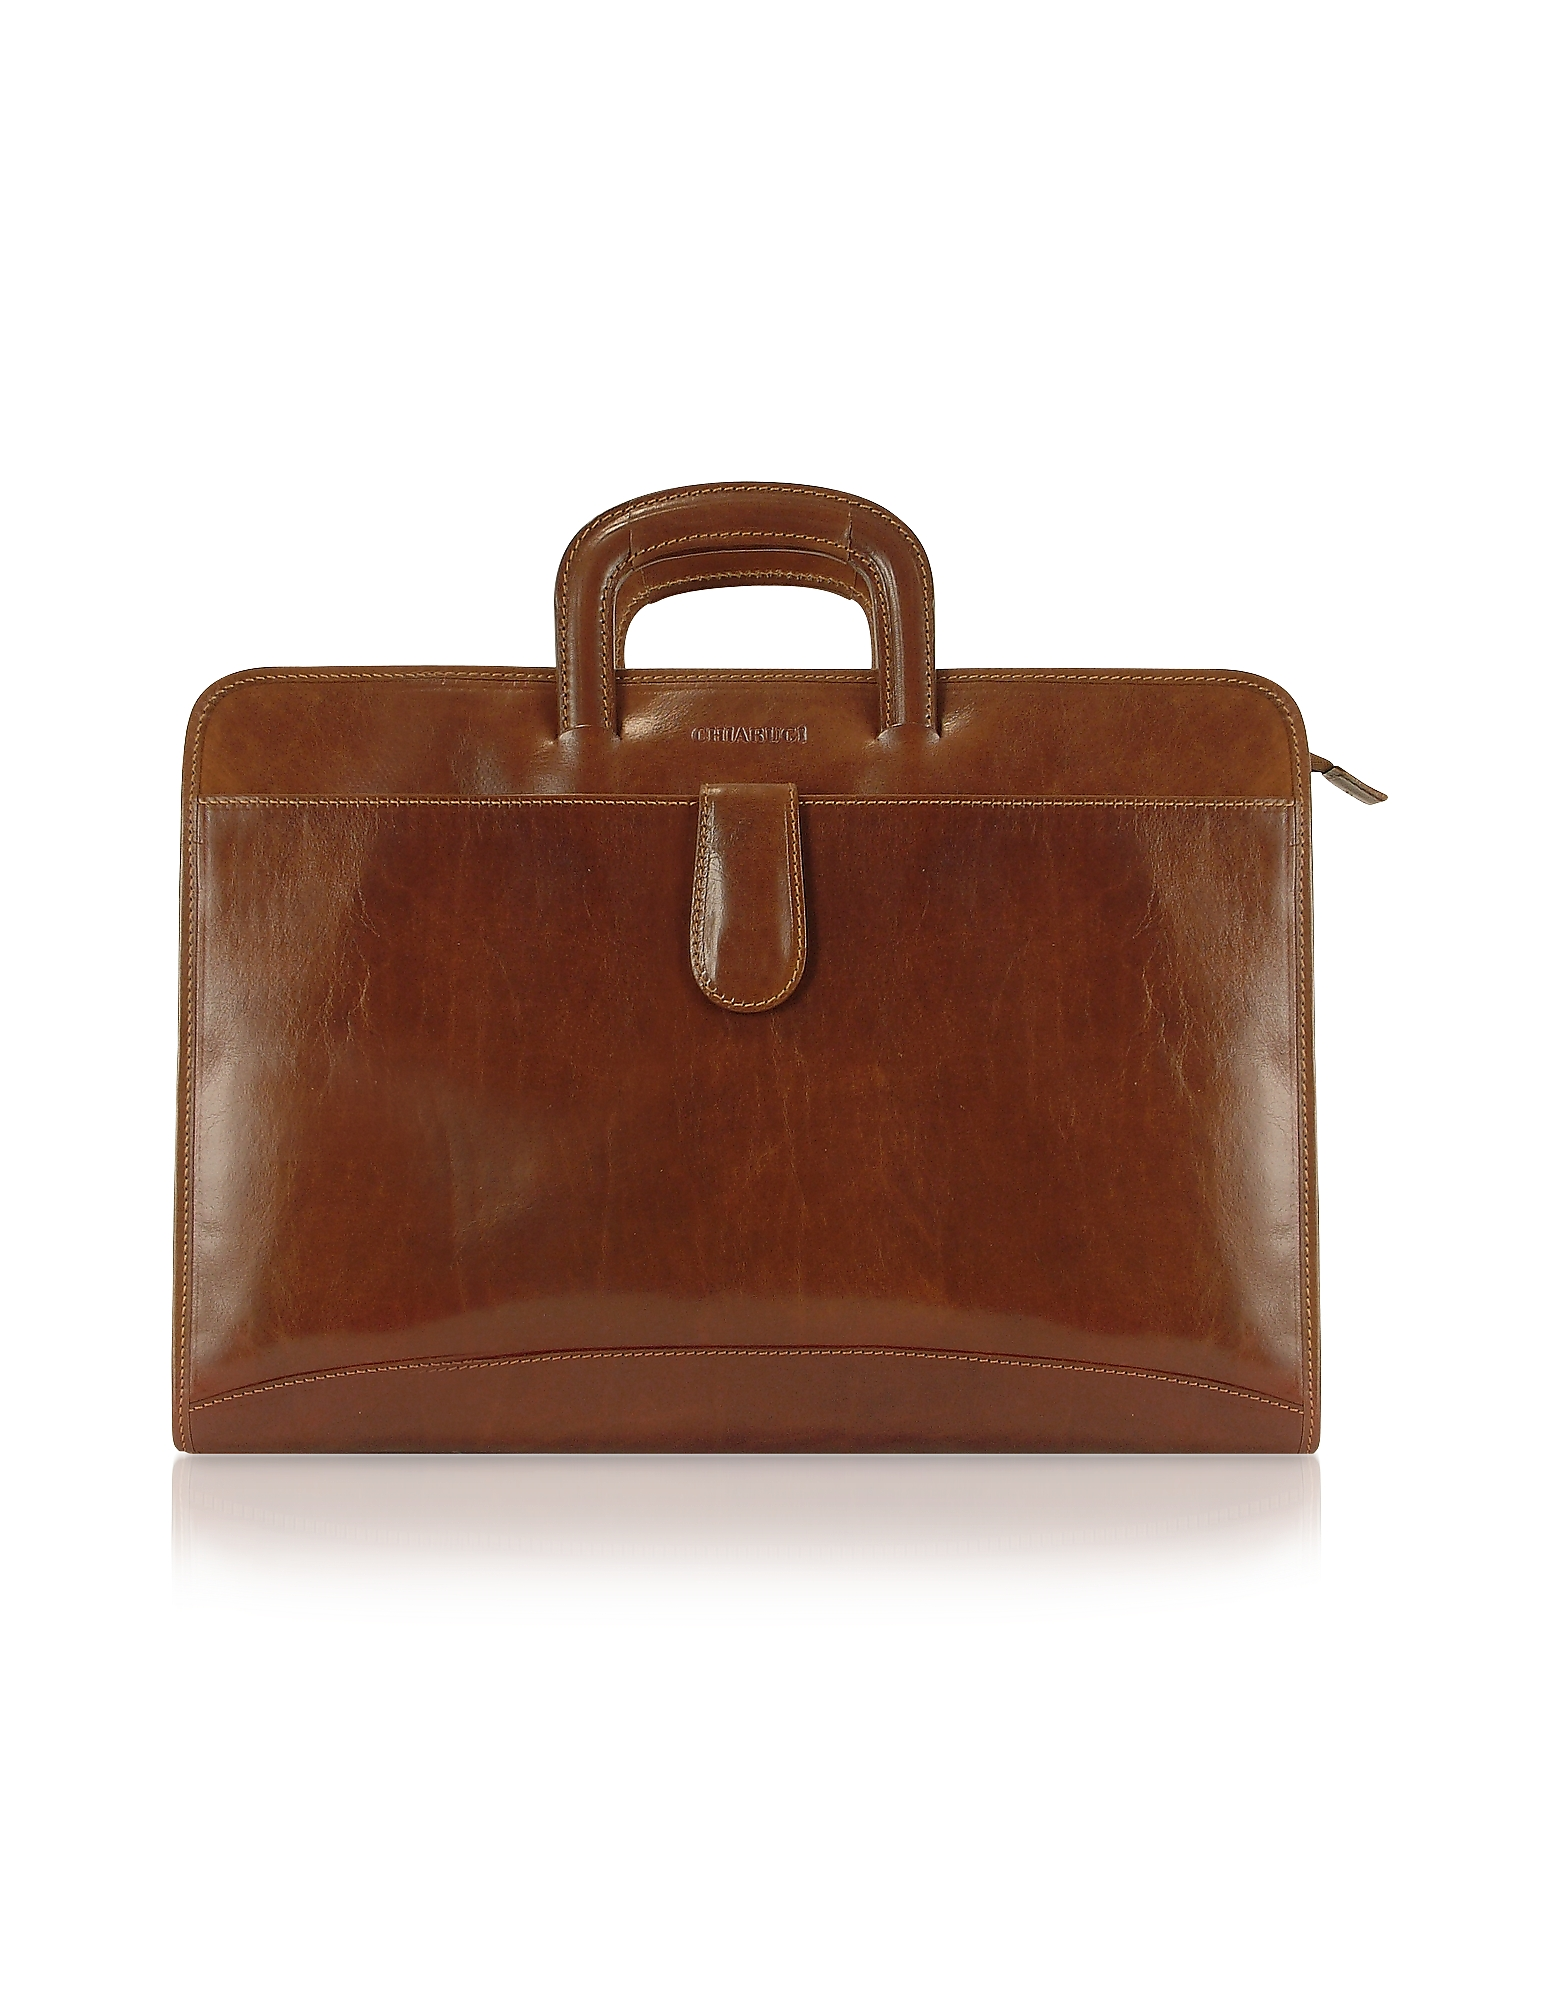 Chiarugi Designer Briefcases,  Handmade Brown Genuine Italian Leather Portfolio Briefcase